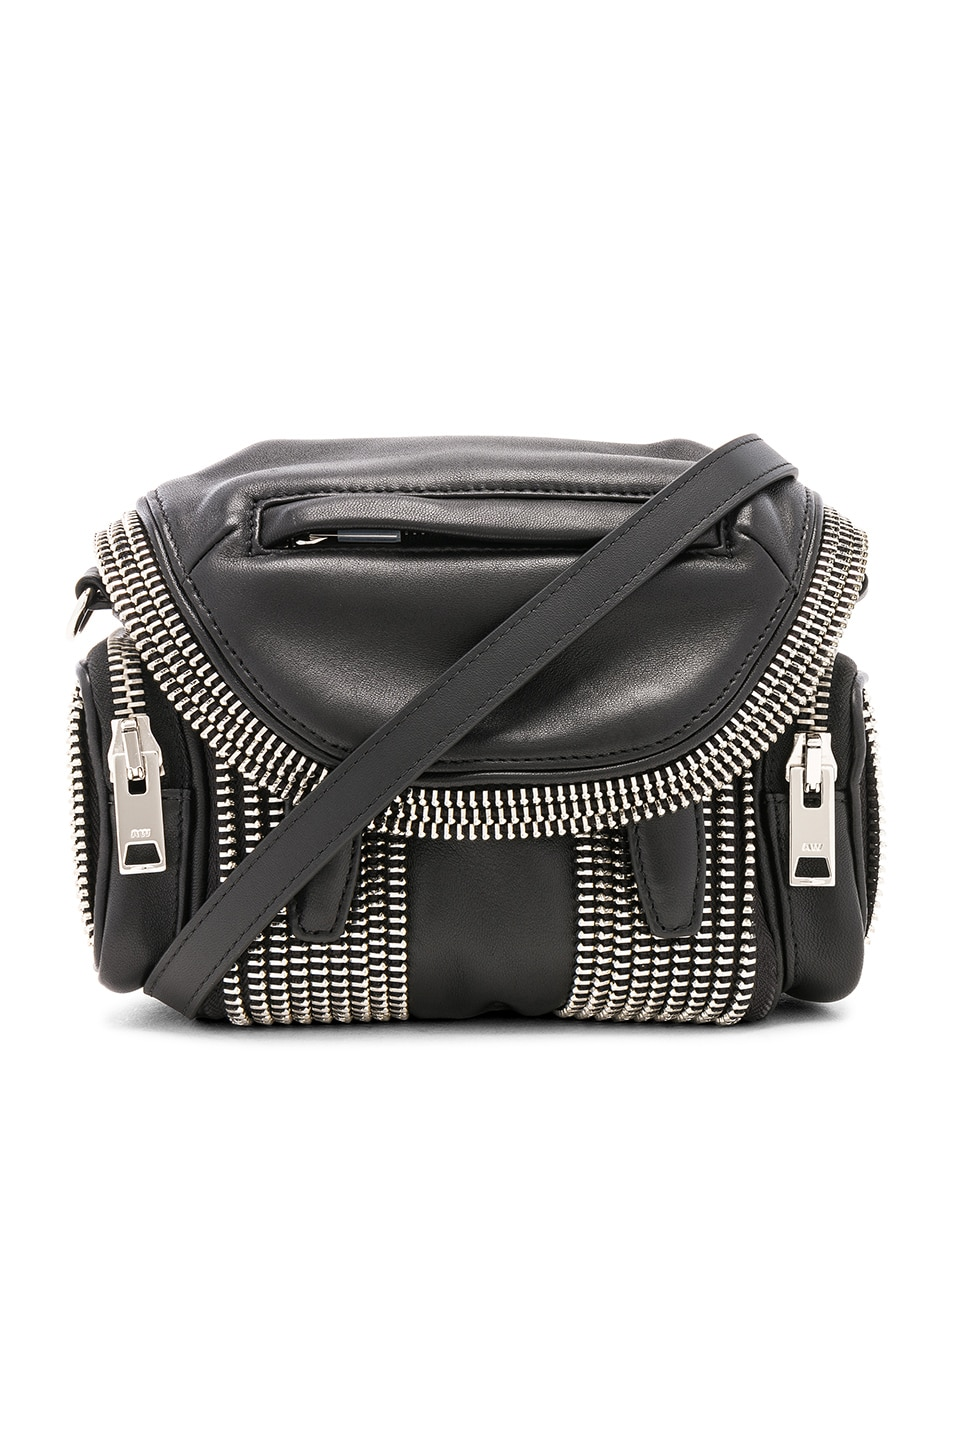 Image 1 of Alexander Wang Micro Marti Bag in Black